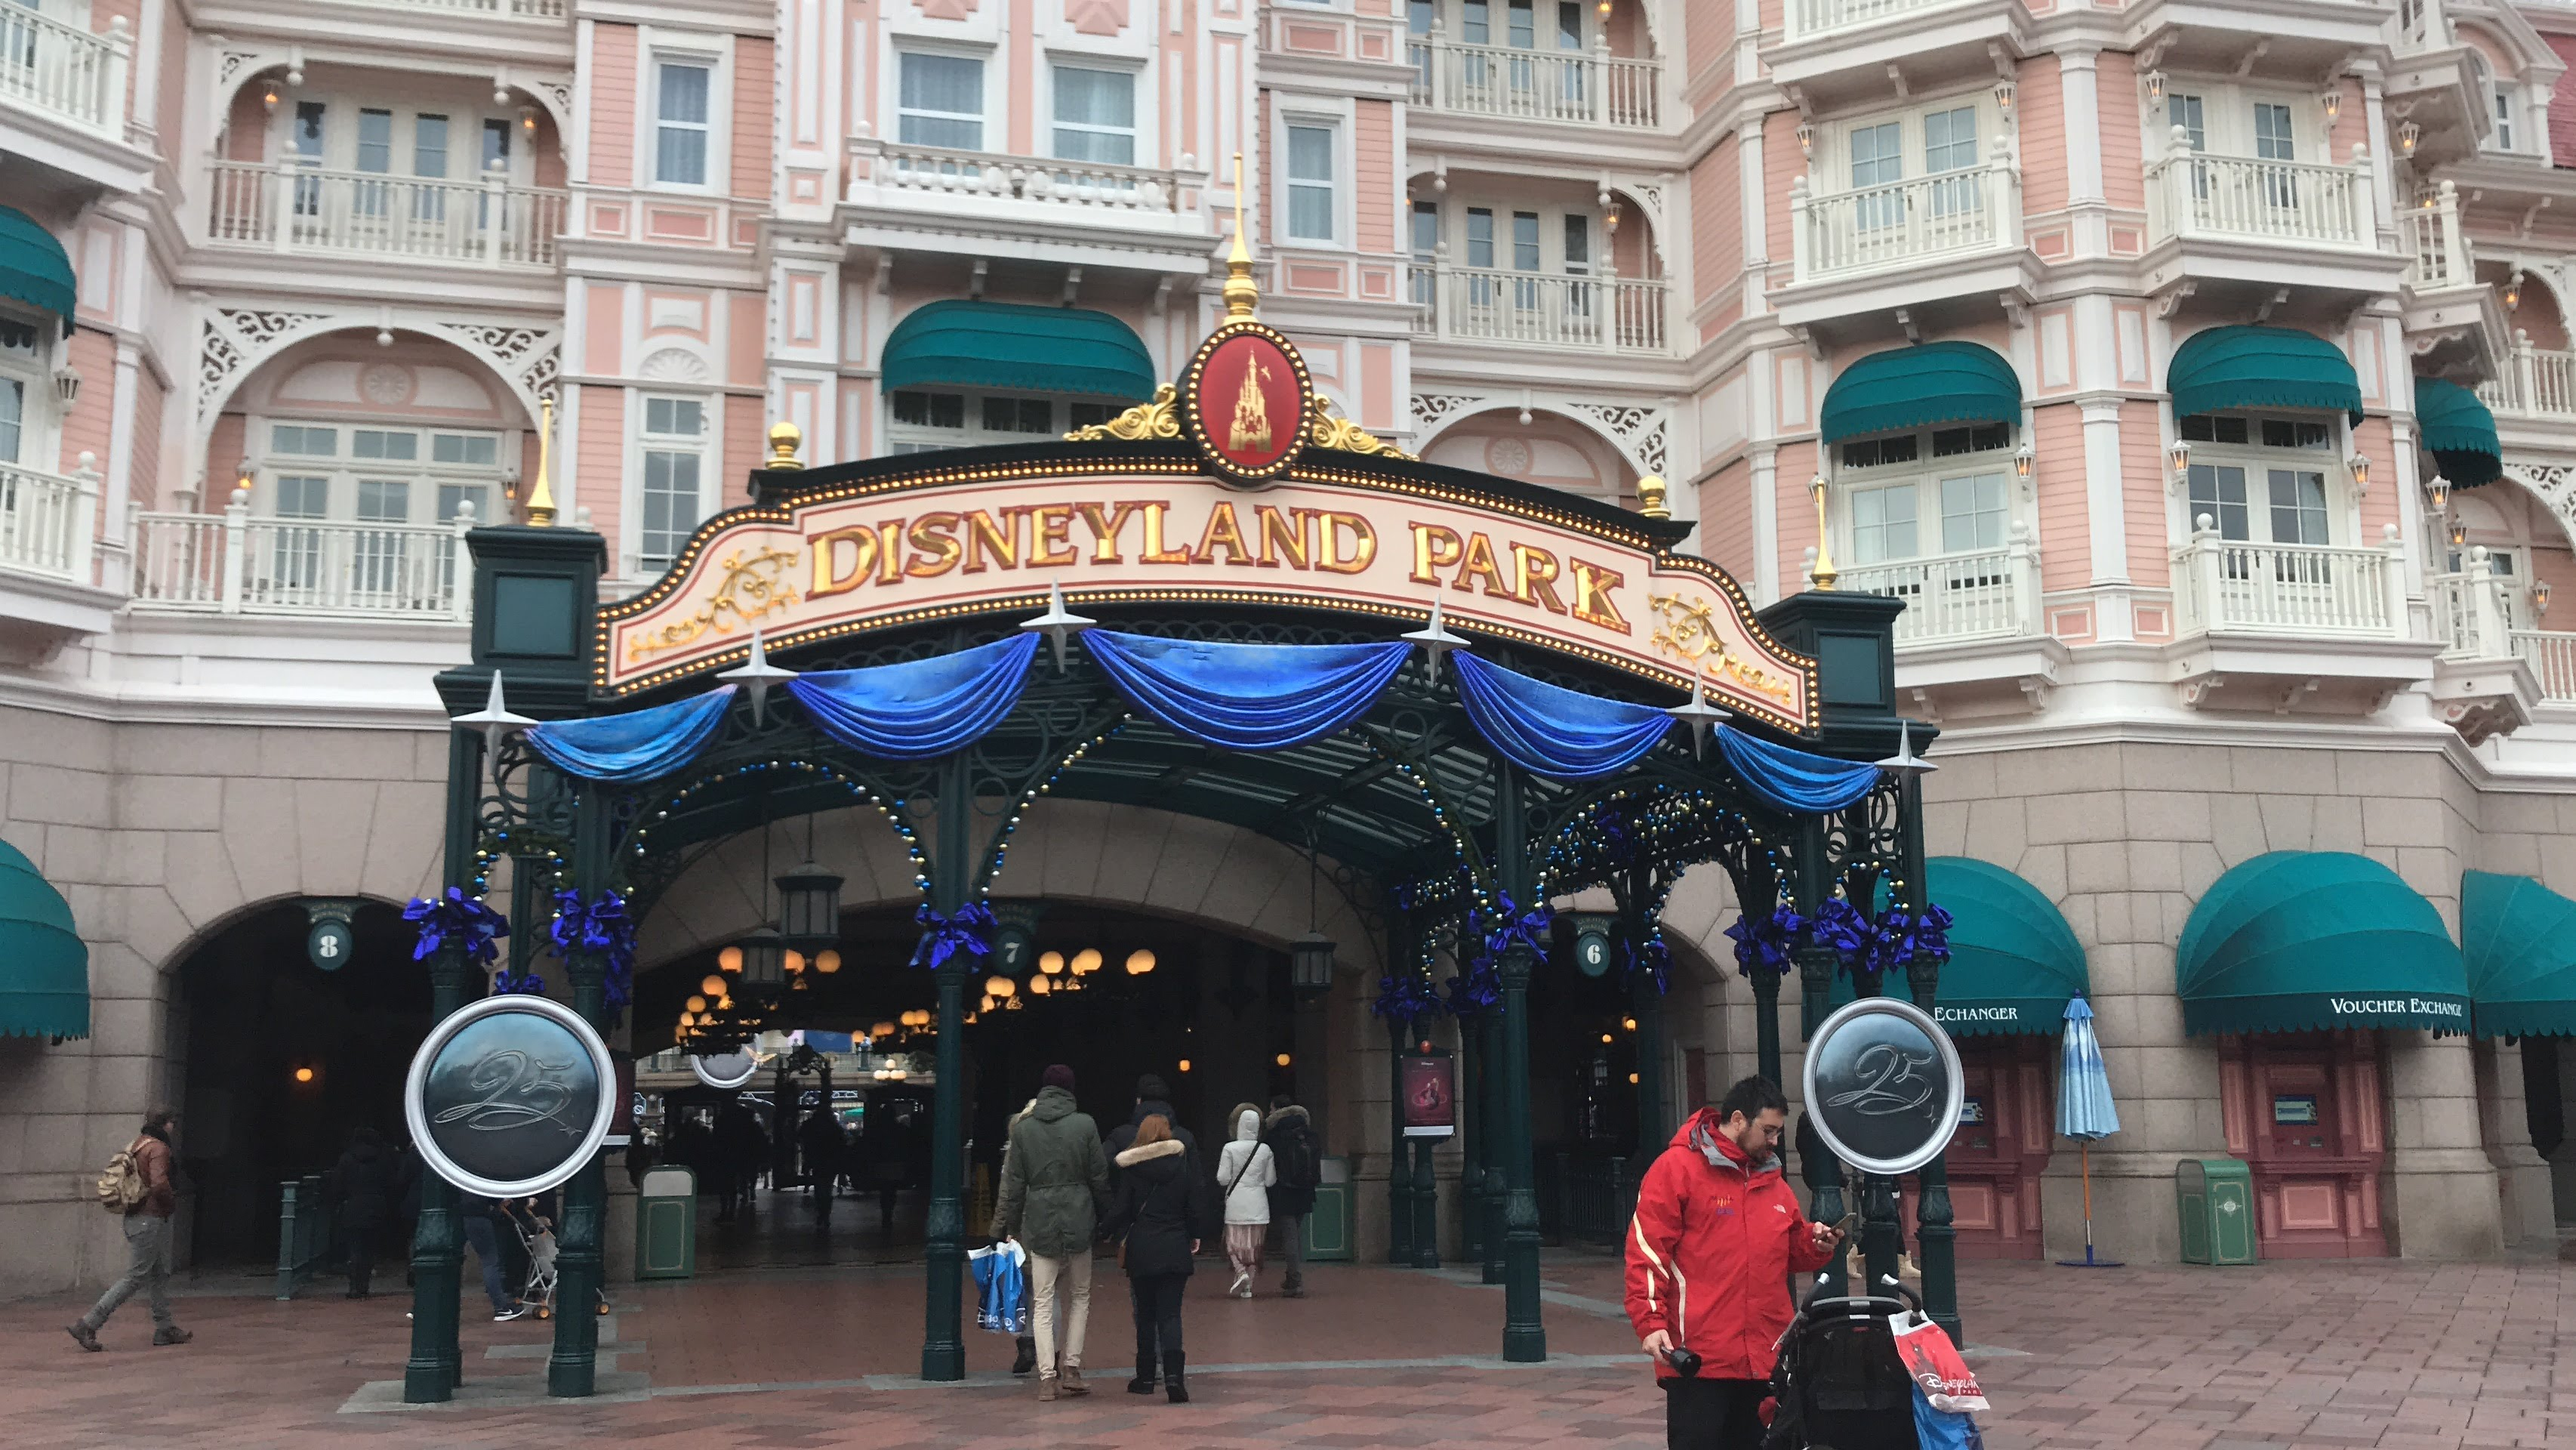 The entrance to Disneyland Paris